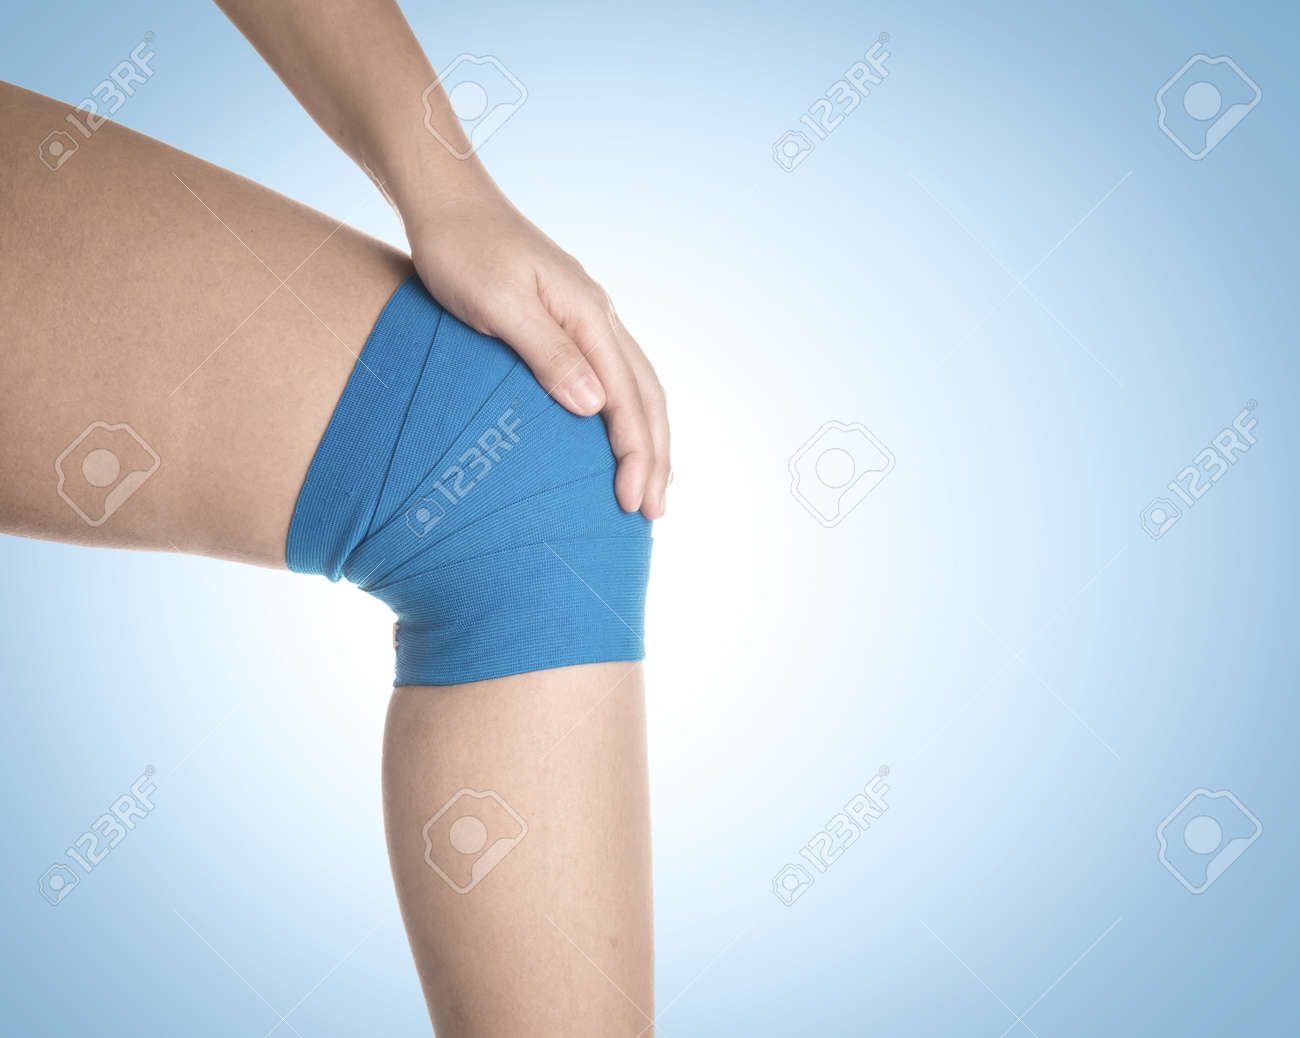 Knee Wrapped In Elastic Bandage On Blue Background Kree Pain Stock